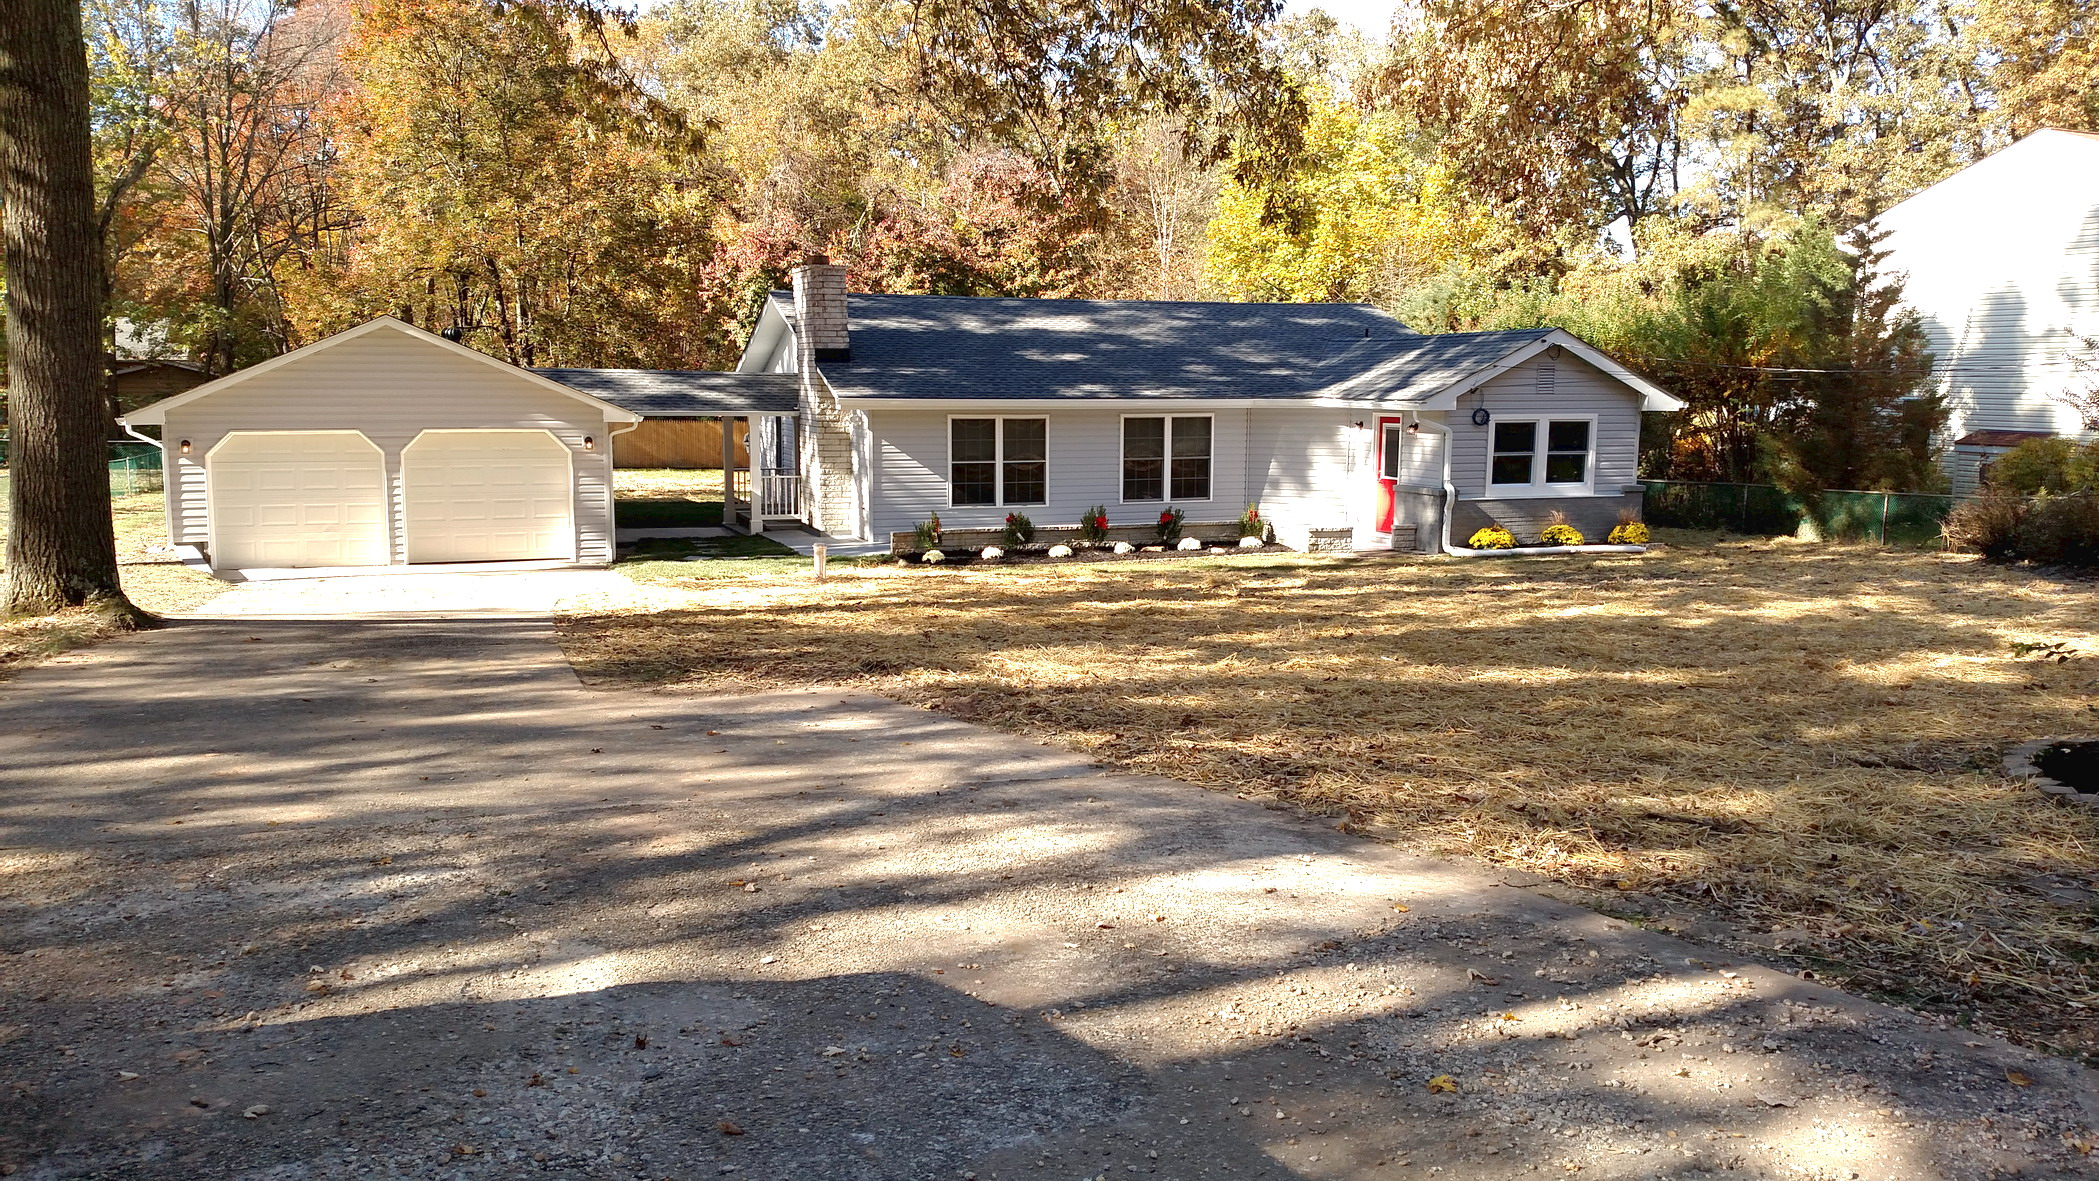 2016 11 08 8342 Elm Rd Front Of House 6